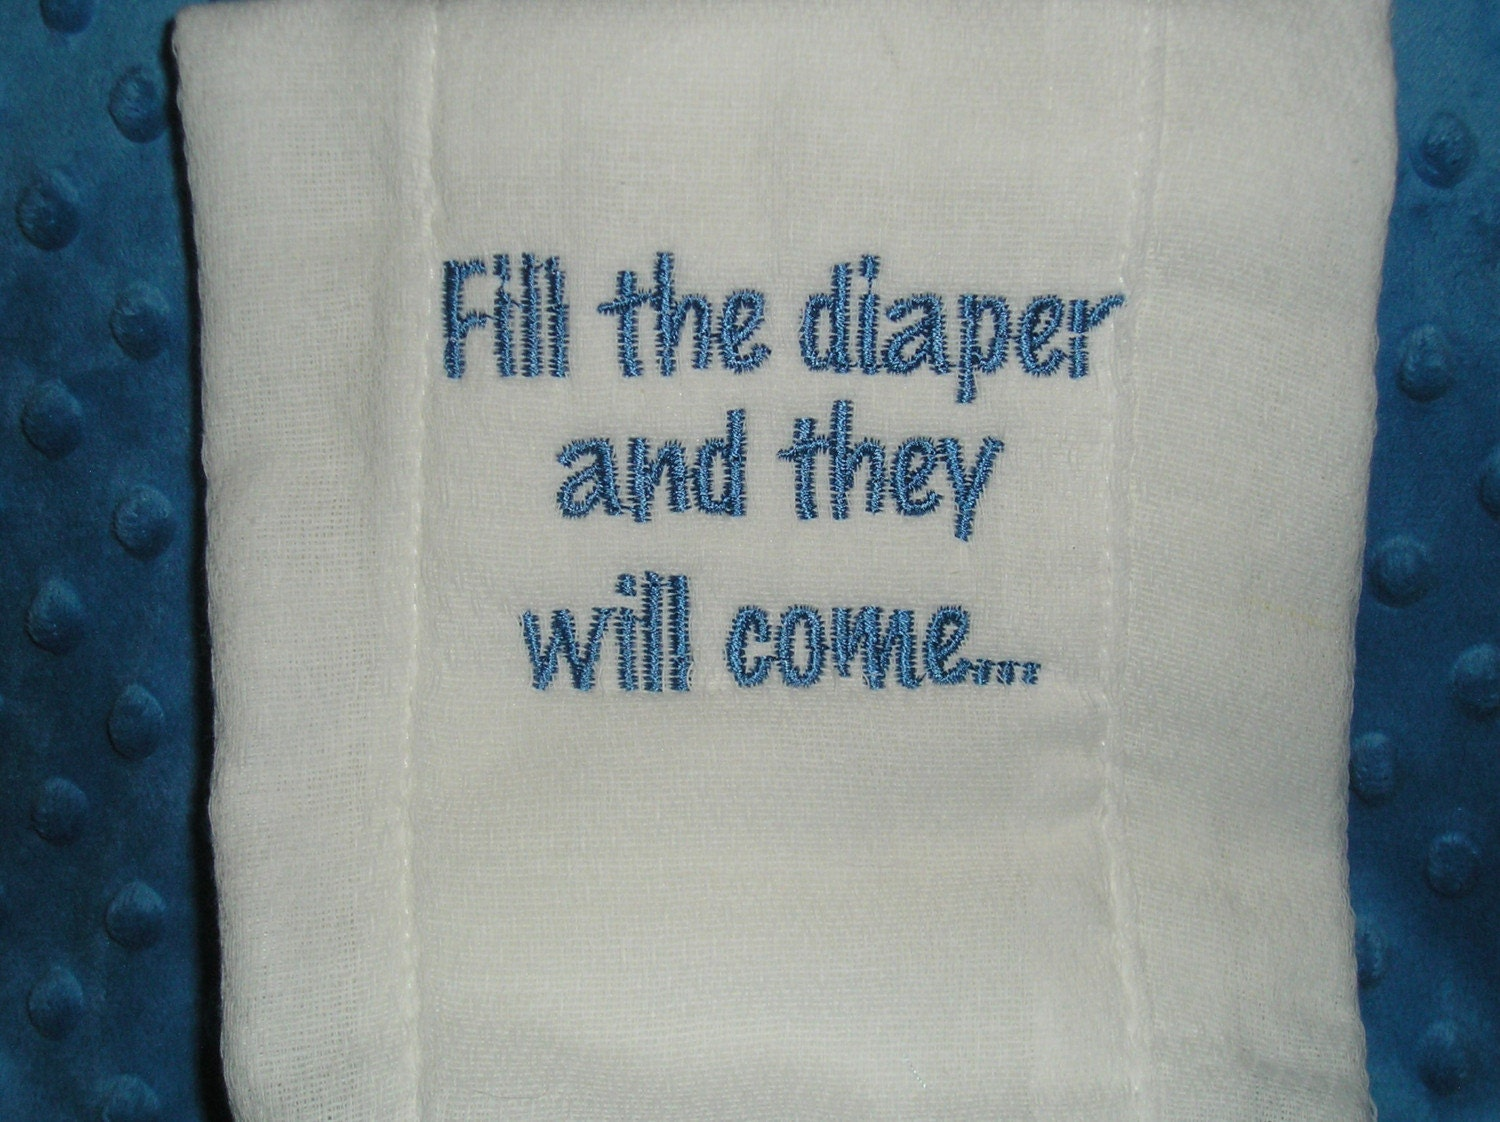 Funny Sayings on Burpcloths